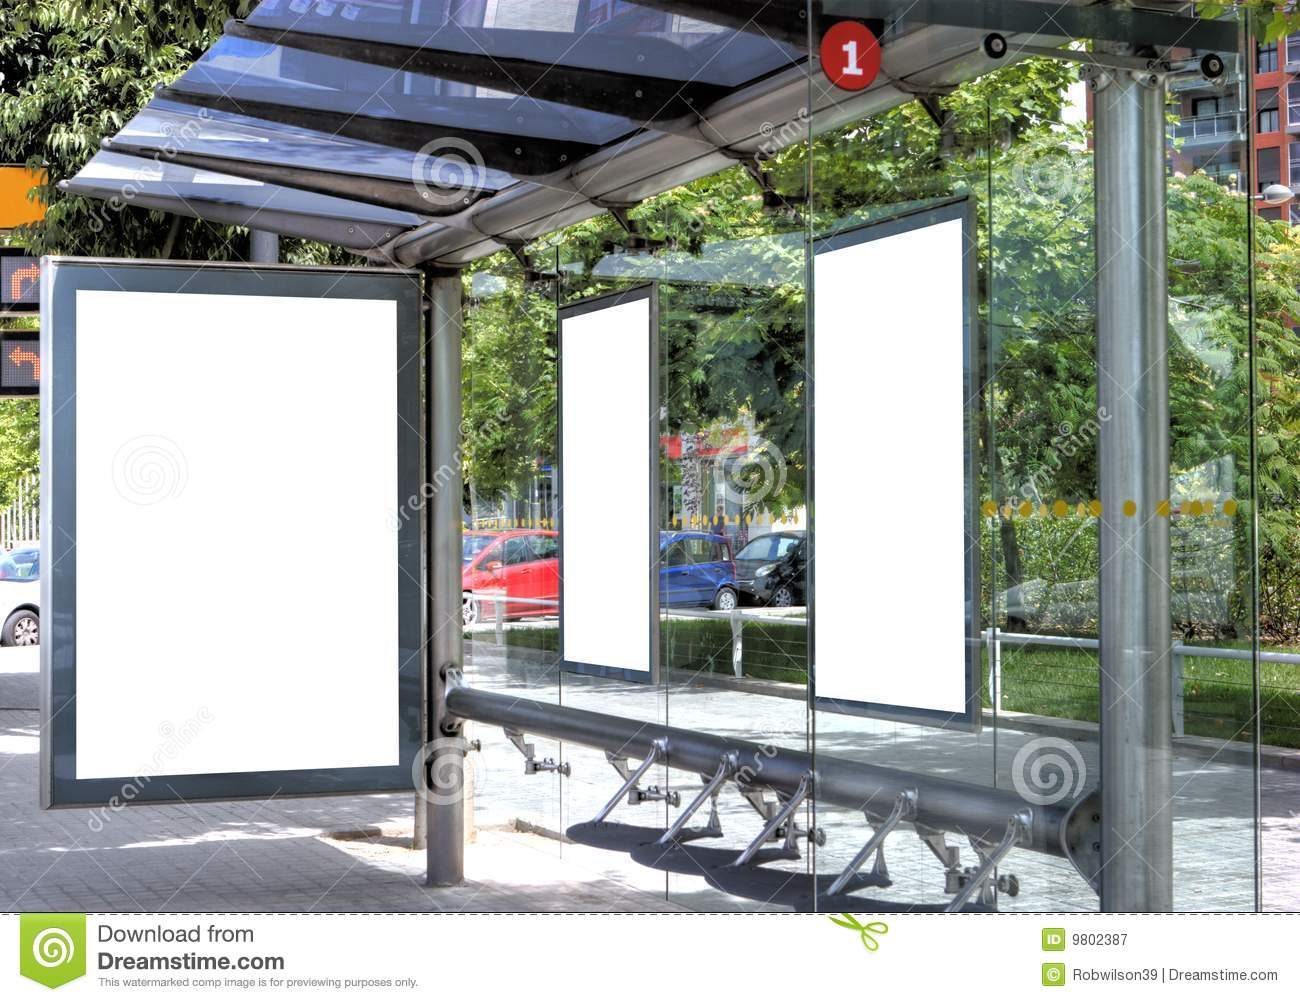 Assez Bus Stop With A Billboard Stock Photos - Image: 14280303 TN12